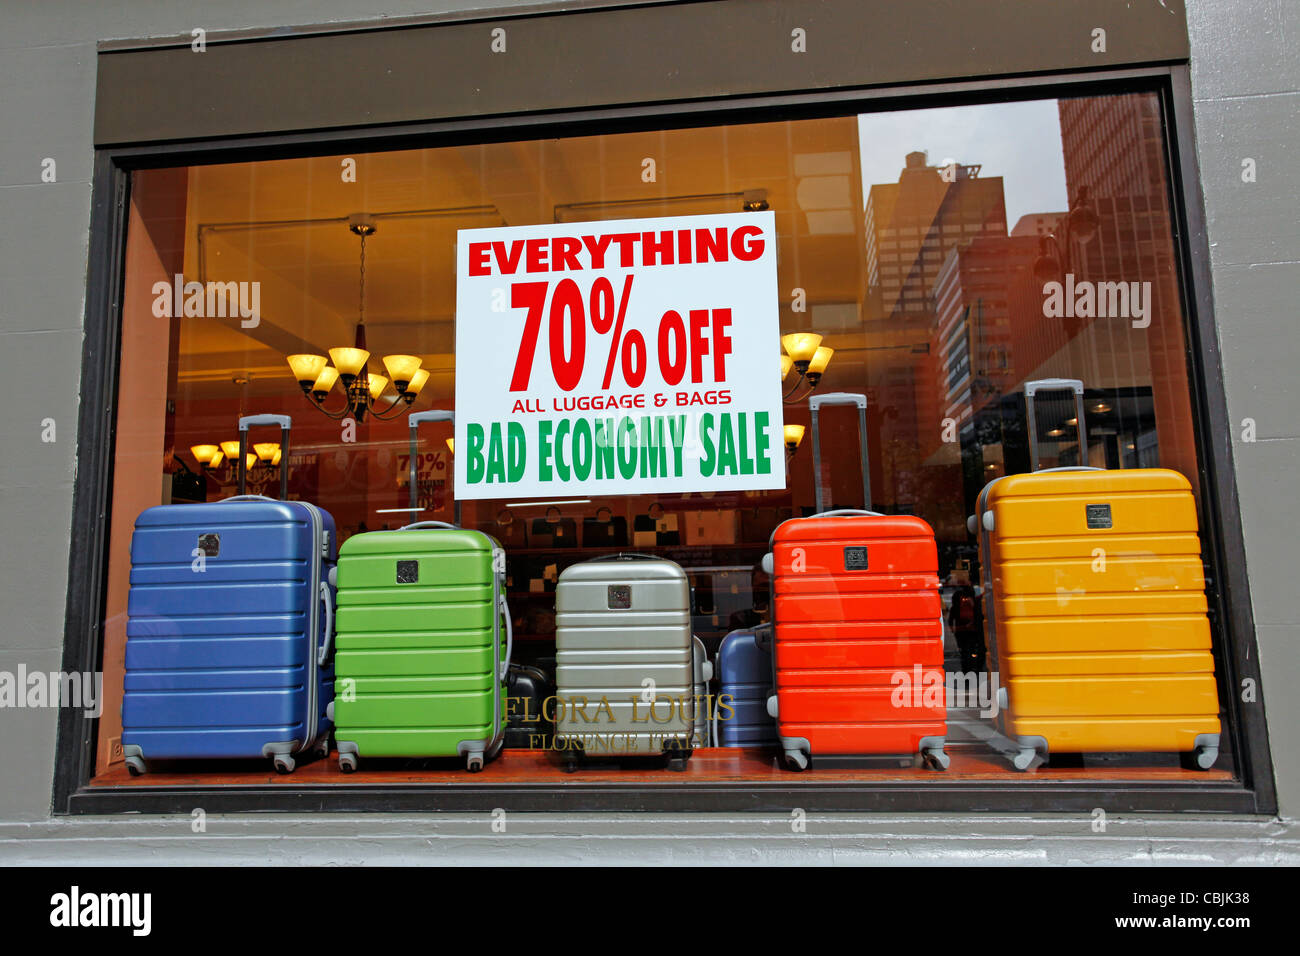 Bad Economy sale sign with 70% off in a luggage and suitcase shop, as a result of slump and economic recession in - Stock Image